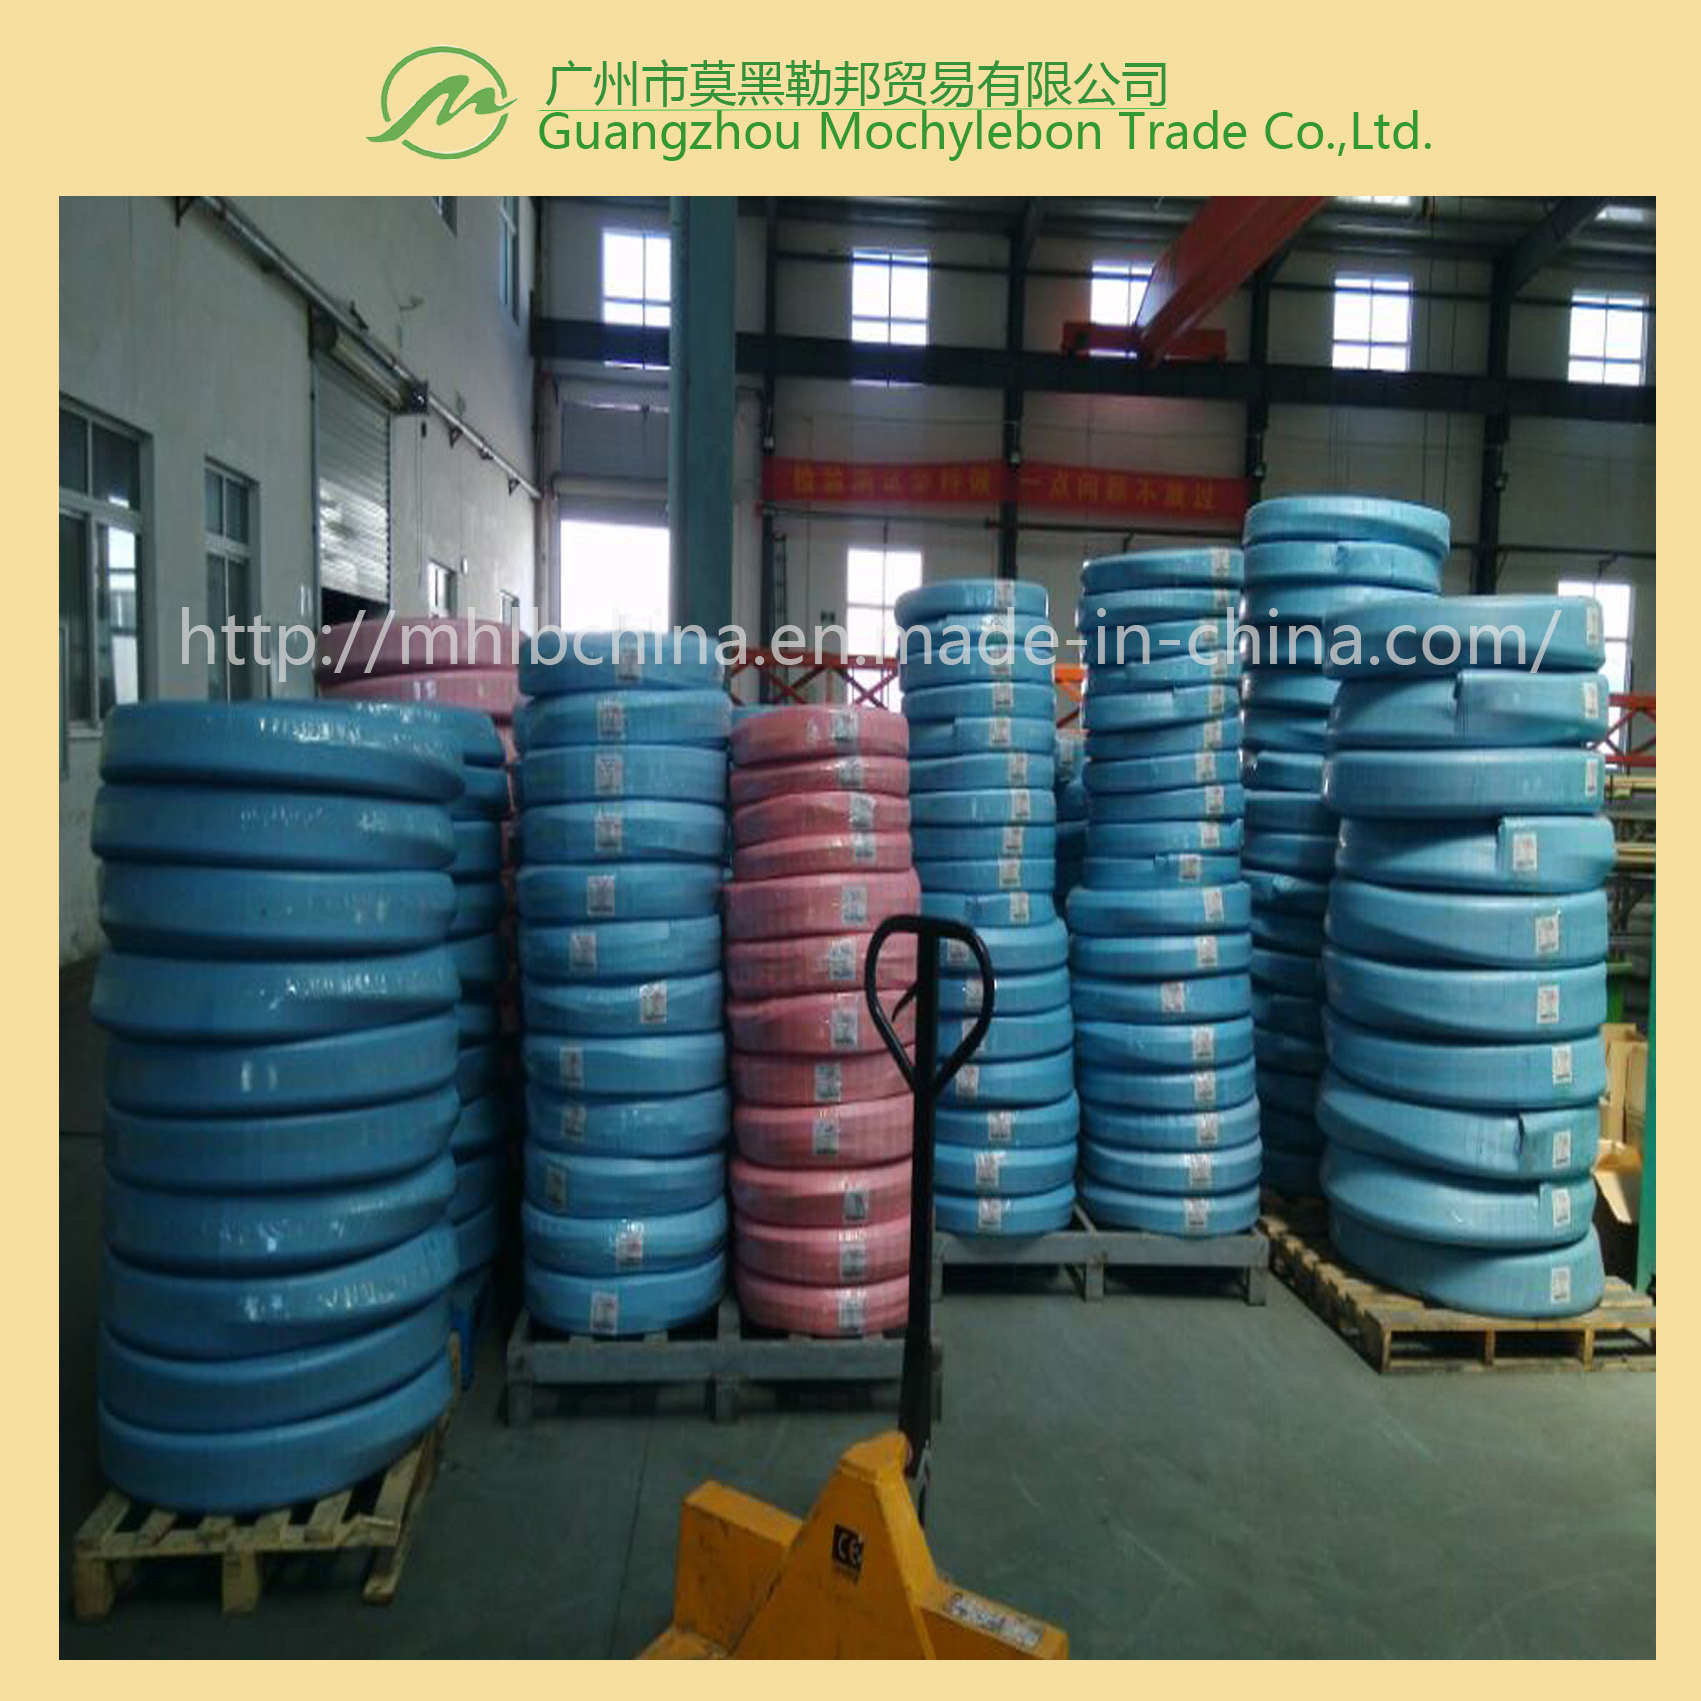 Steel Wire Braided Reinforced Rubber Covered Hydraulic Hose (SAE100 R1-R3AT) pictures & photos